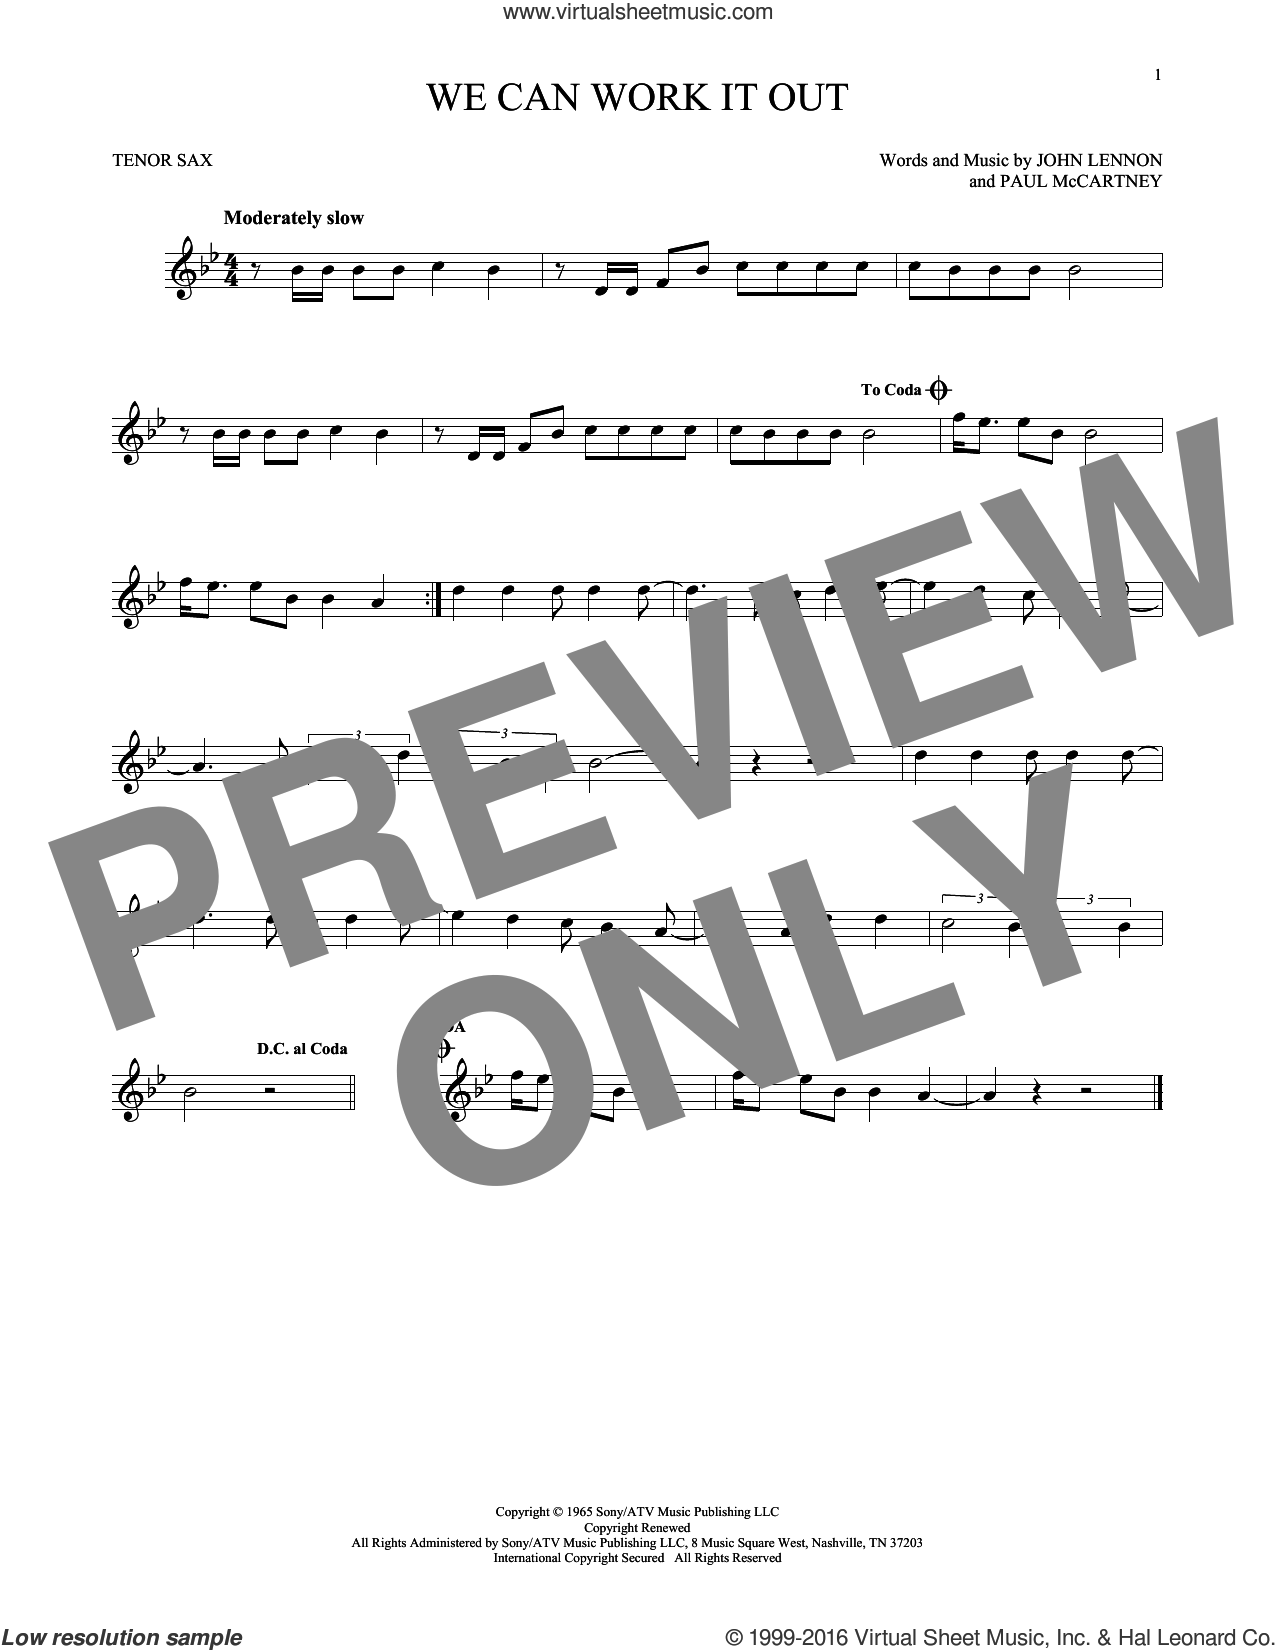 We Can Work It Out sheet music for tenor saxophone solo by Paul McCartney, The Beatles and John Lennon. Score Image Preview.